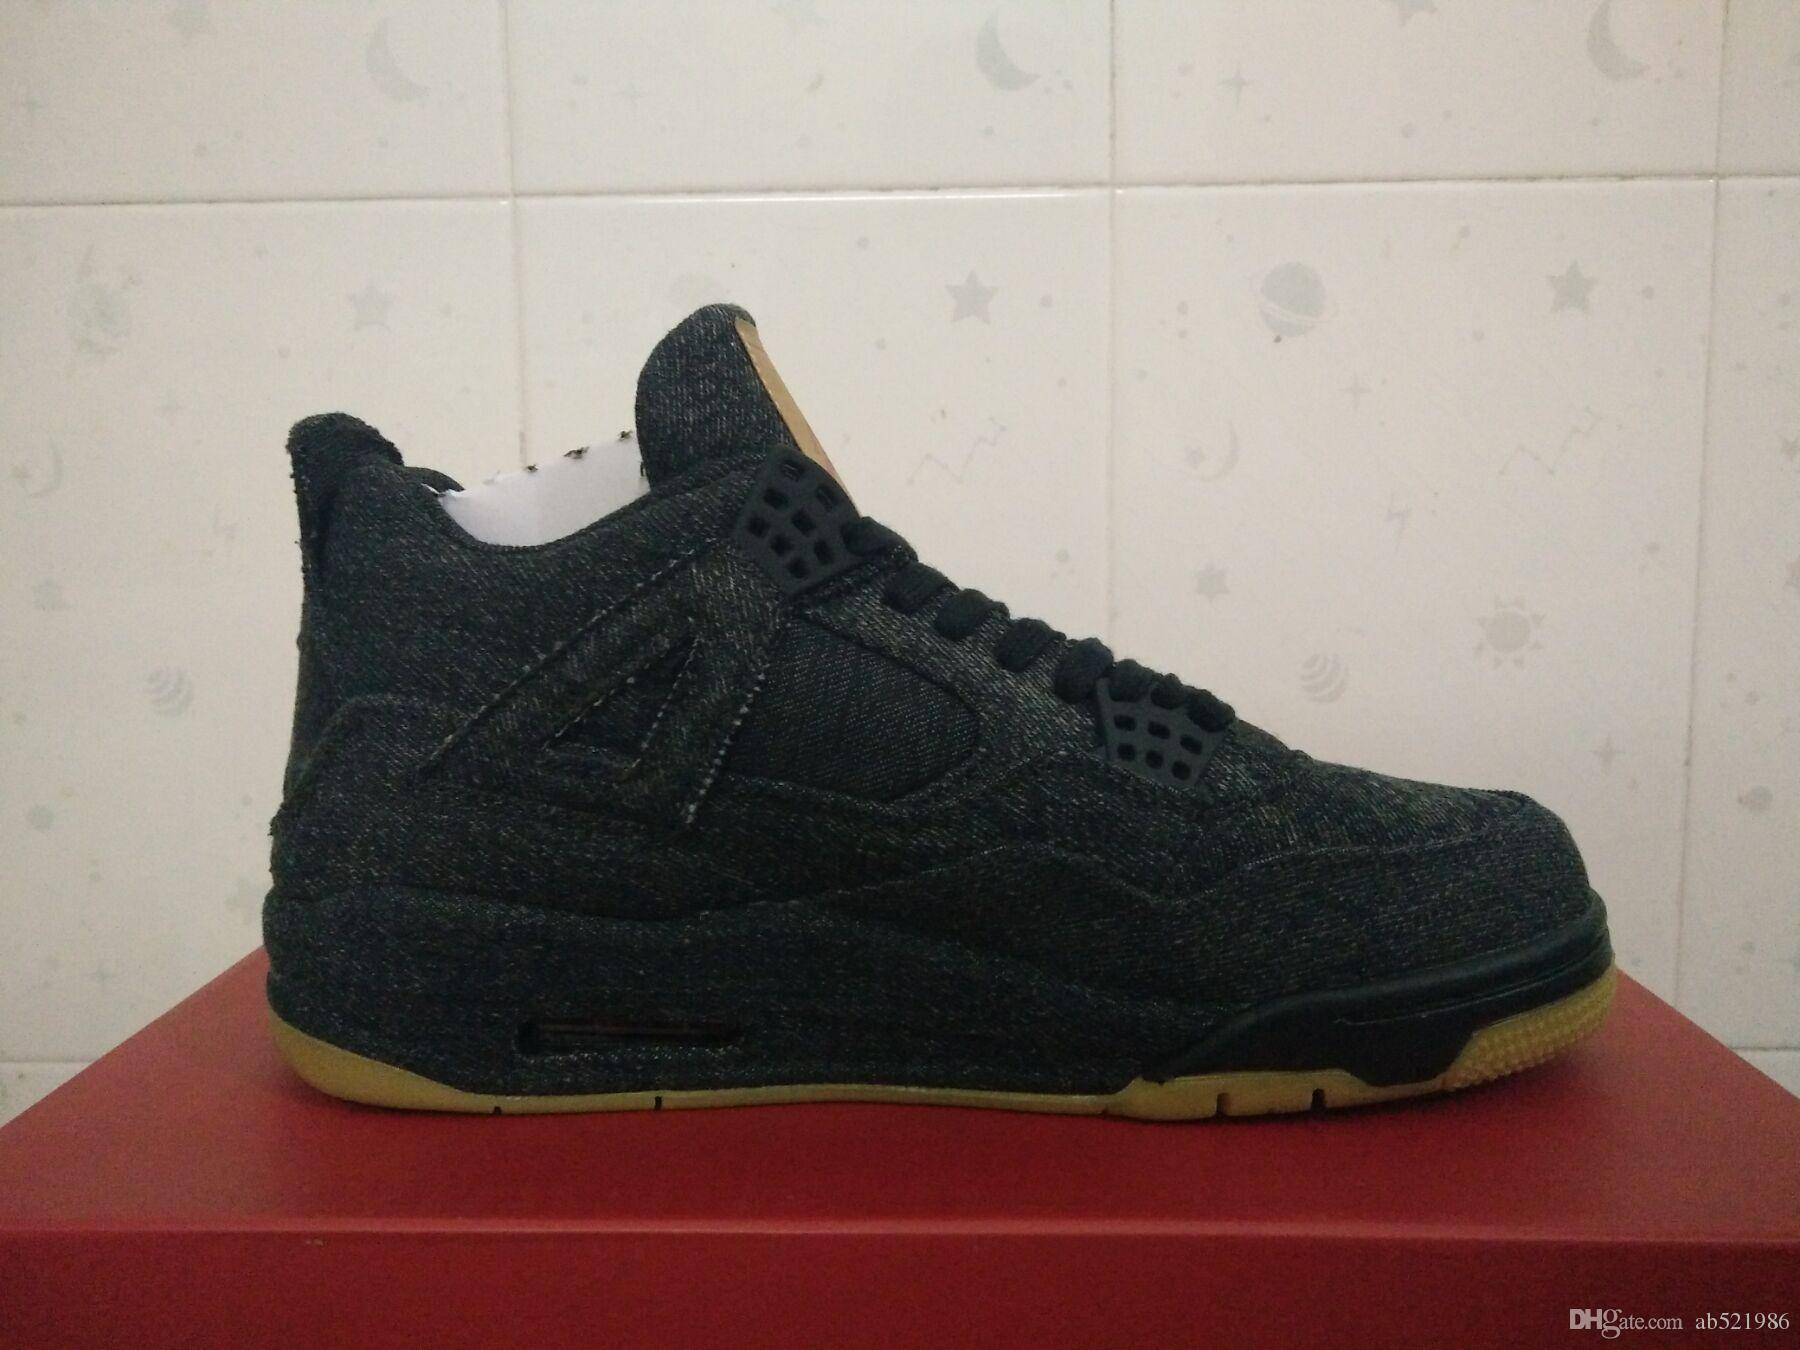 5fe47621073820 Black Basketball Shoes Men Athletic Shoes Sneakers AO2571-001 Air  Basketball Shoes Online with  167.71 Pair on Ab521986 s Store